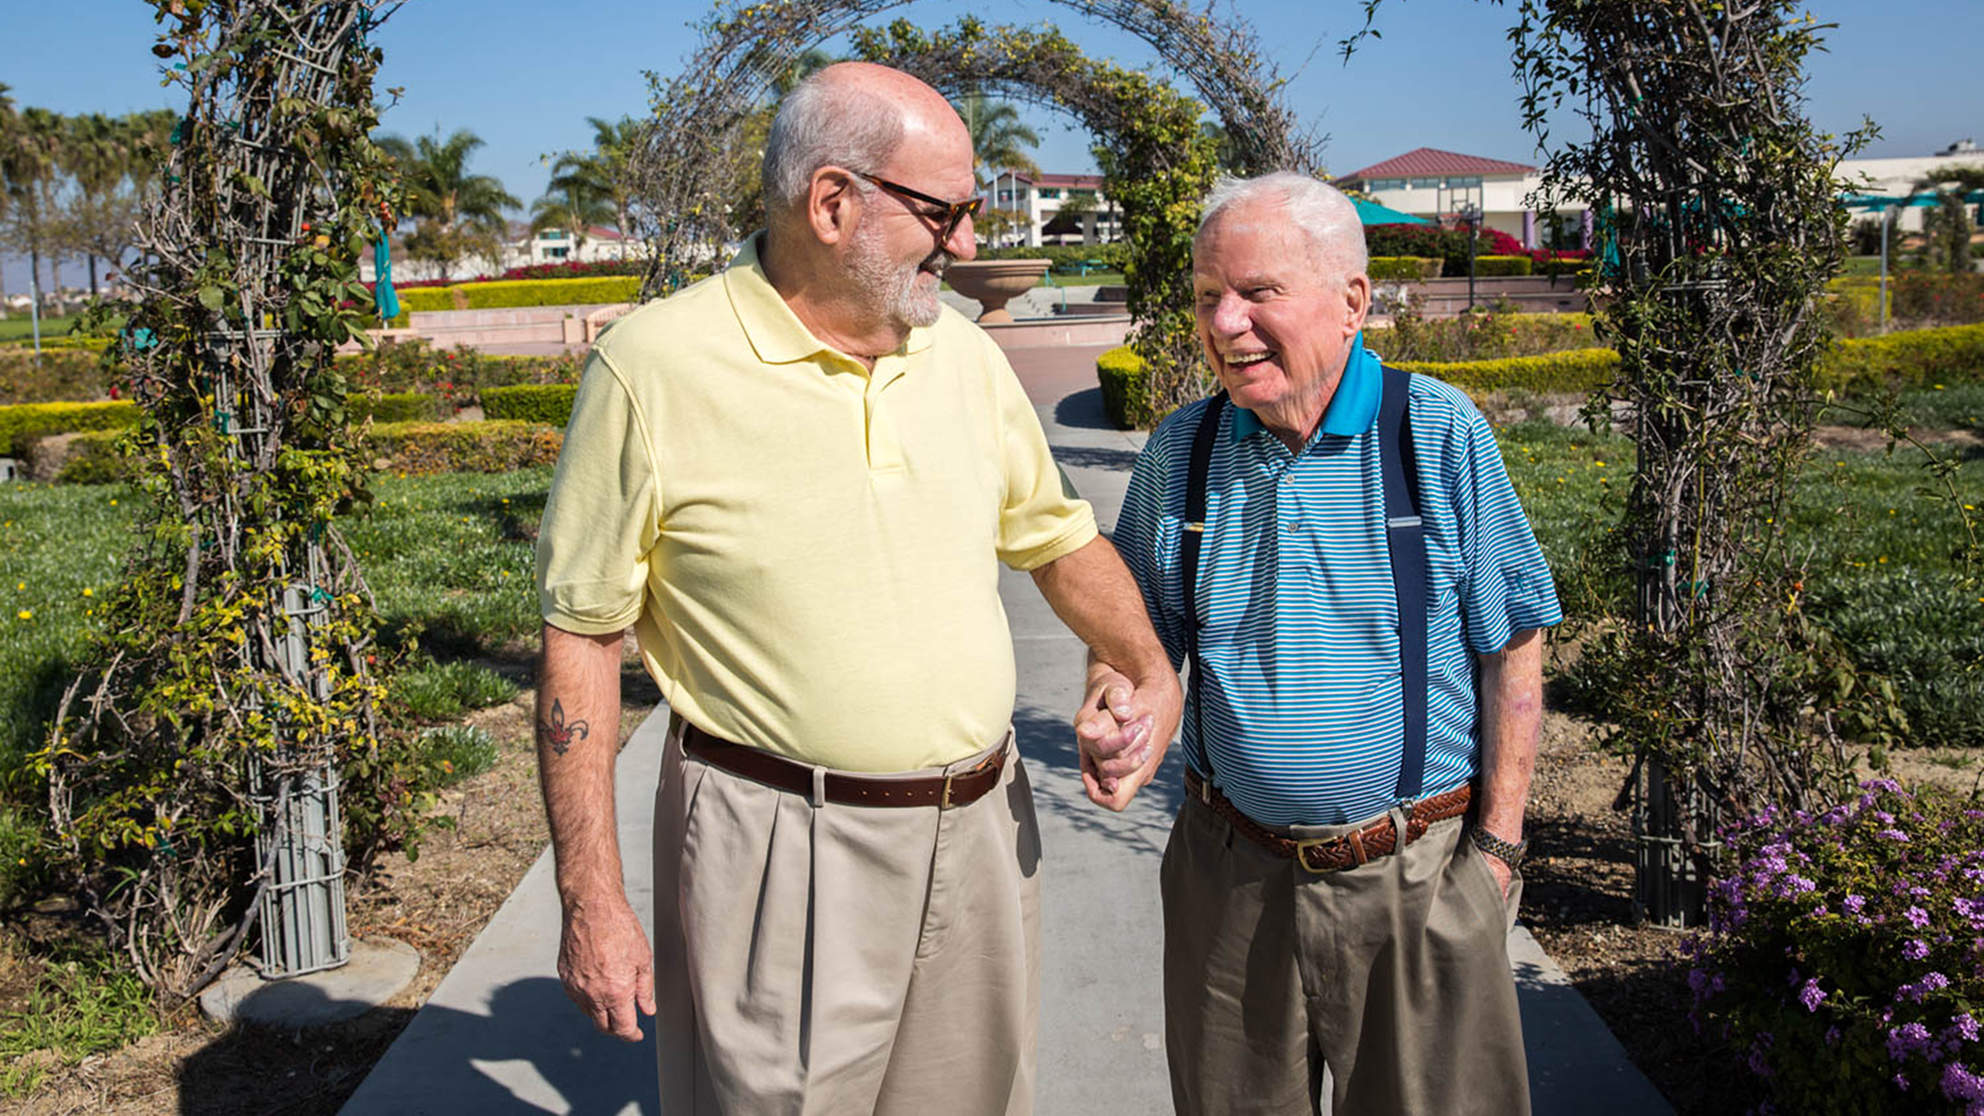 Gay Veterans—Ages 100 and 72—Share Story of Coming Out and Falling in Love in Nursing Home